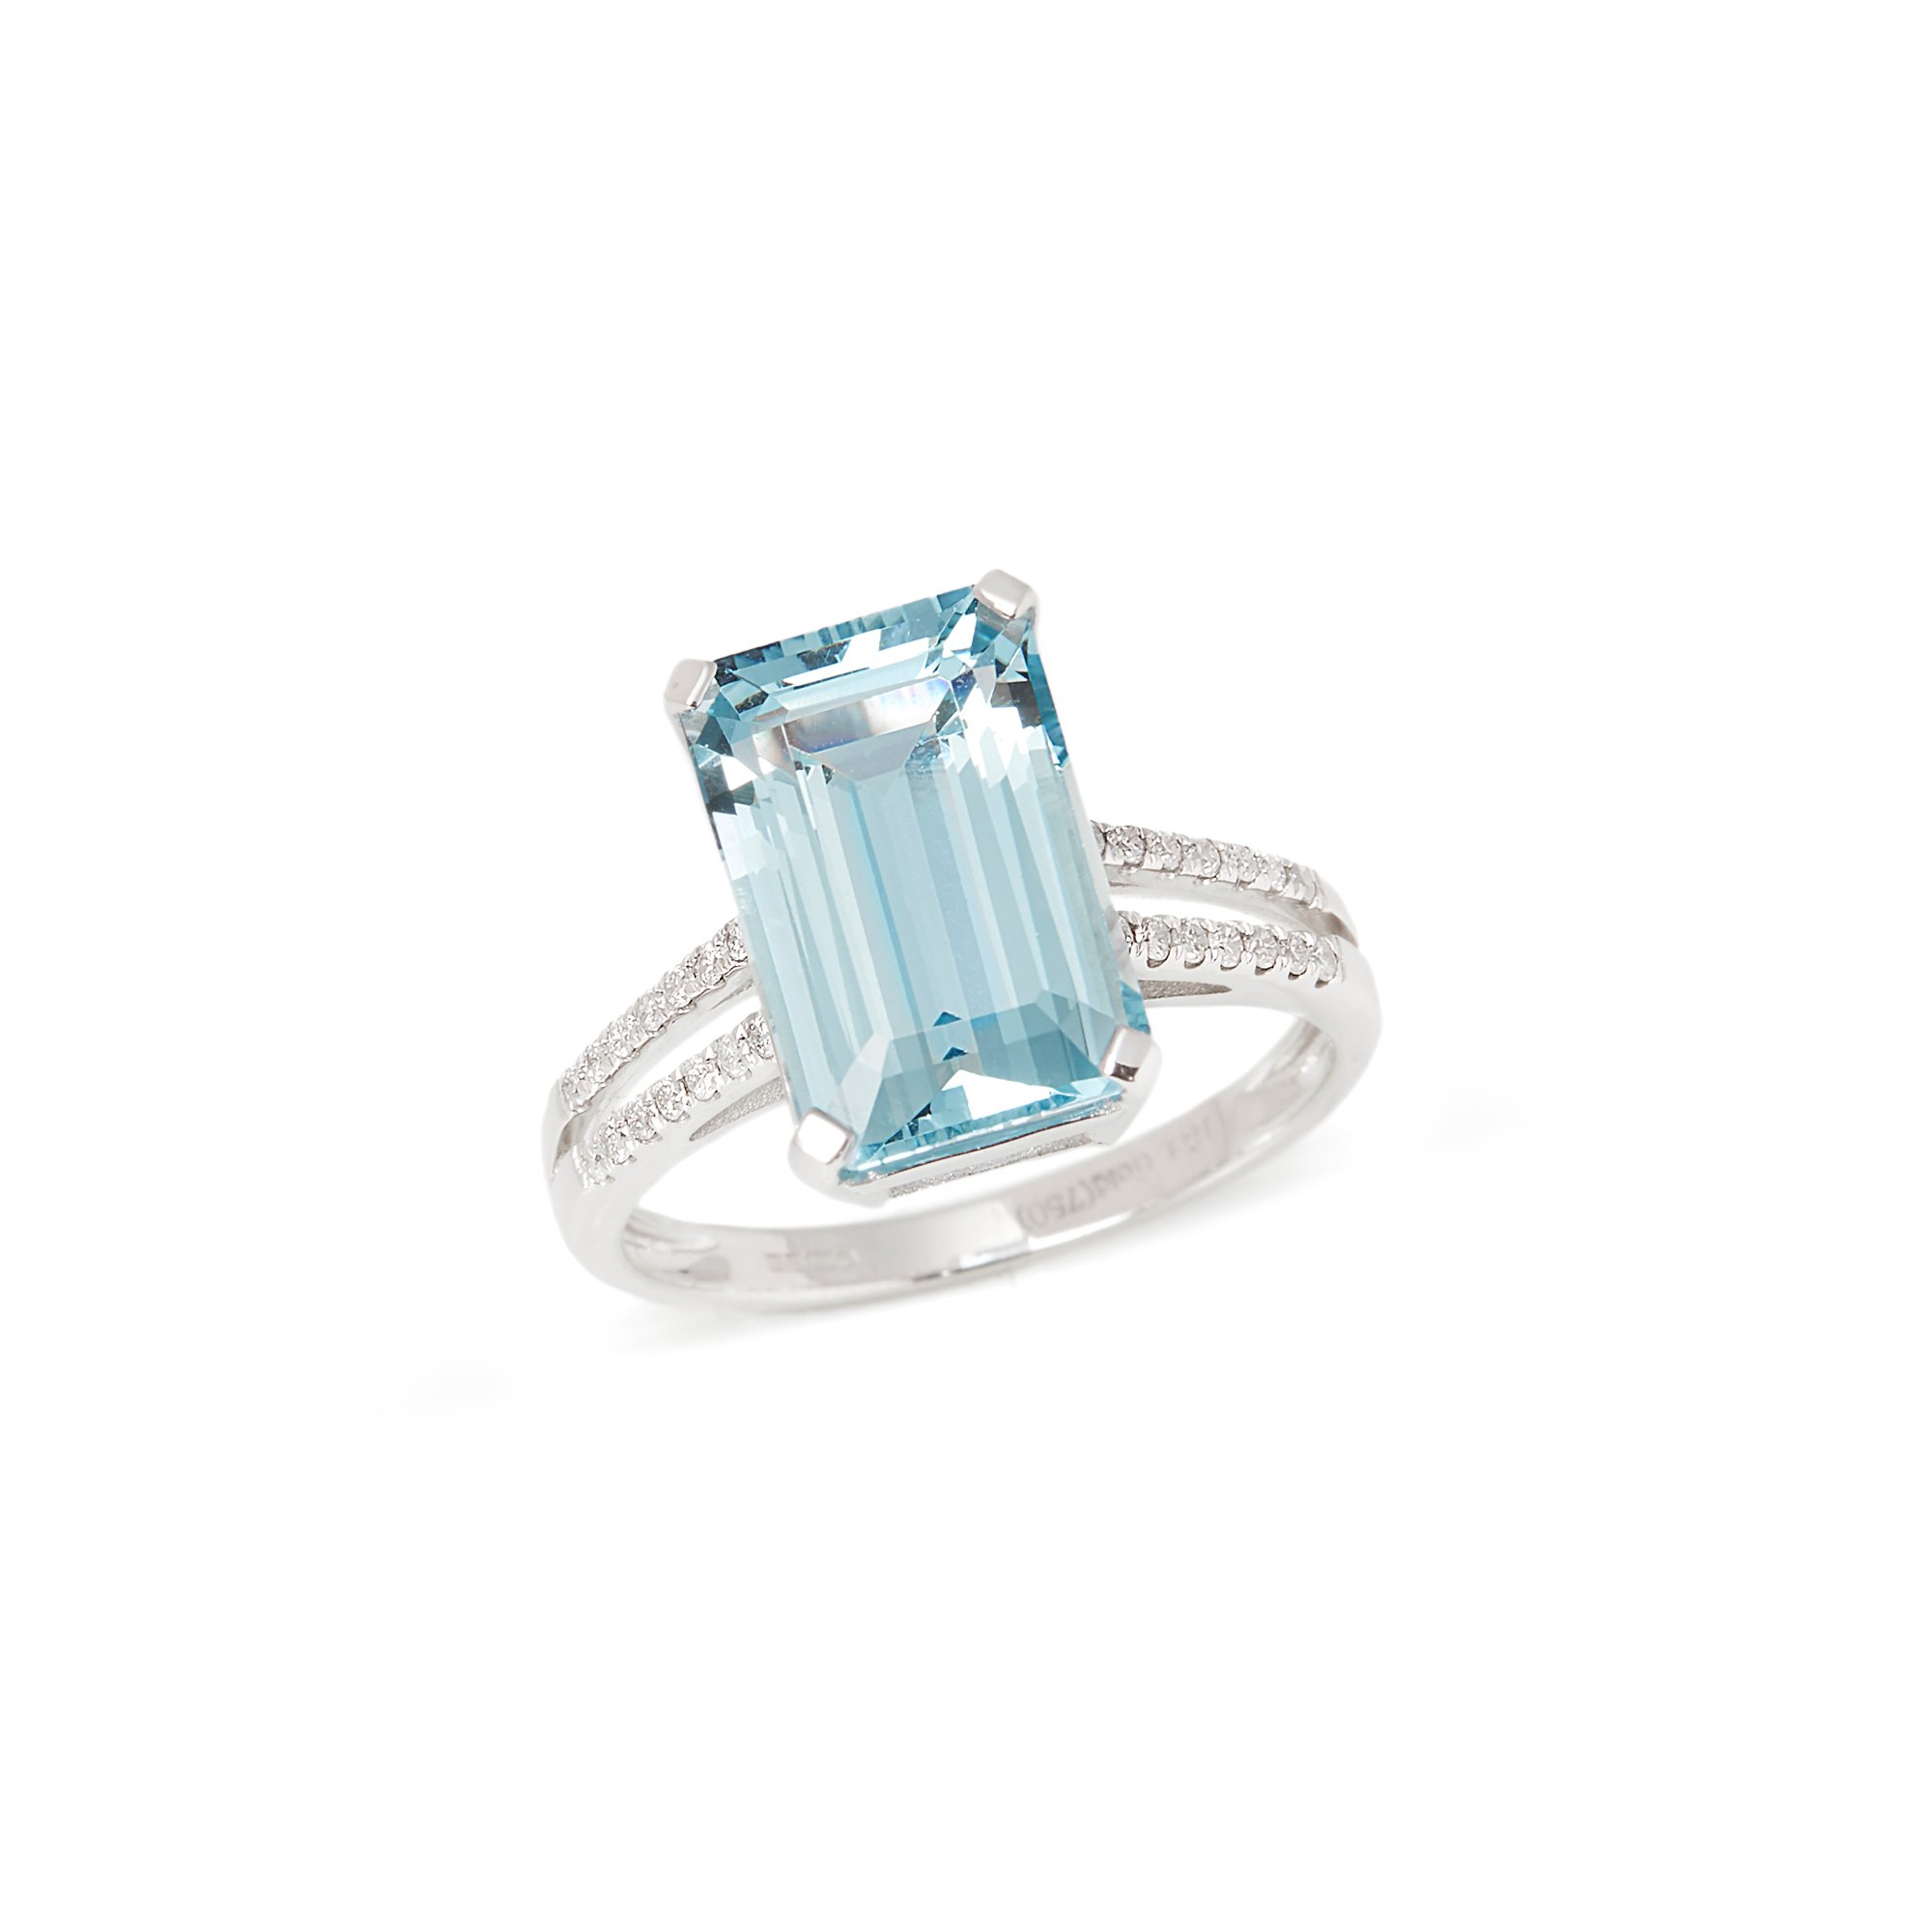 David Jerome Certified 5.22ct Emerald Cut Aquamarine and Diamond 18ct Gold Ring